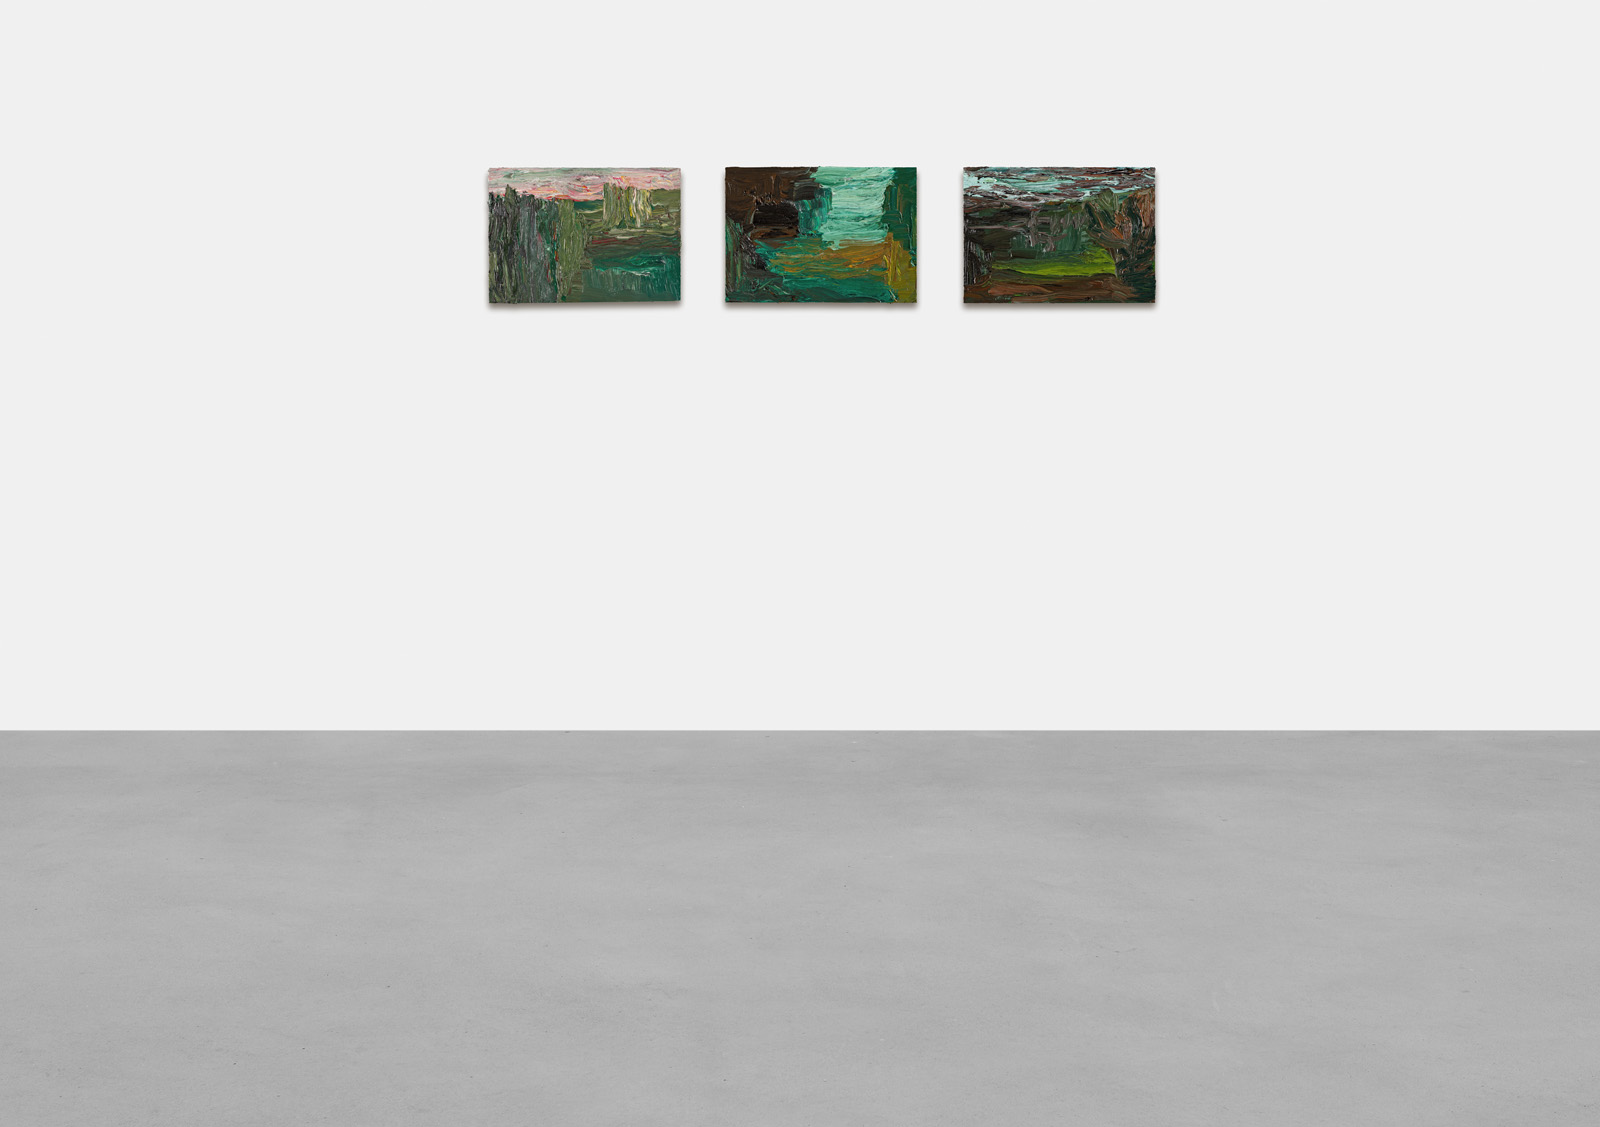 Cabrita works from 'Landscapes 2020 (series II)', 2020 Oil on plywood each 23 x 33 cm | 9 x 13 in Photo: Lepkowski Studios Berlin © the artist and KEWENIG Berlin